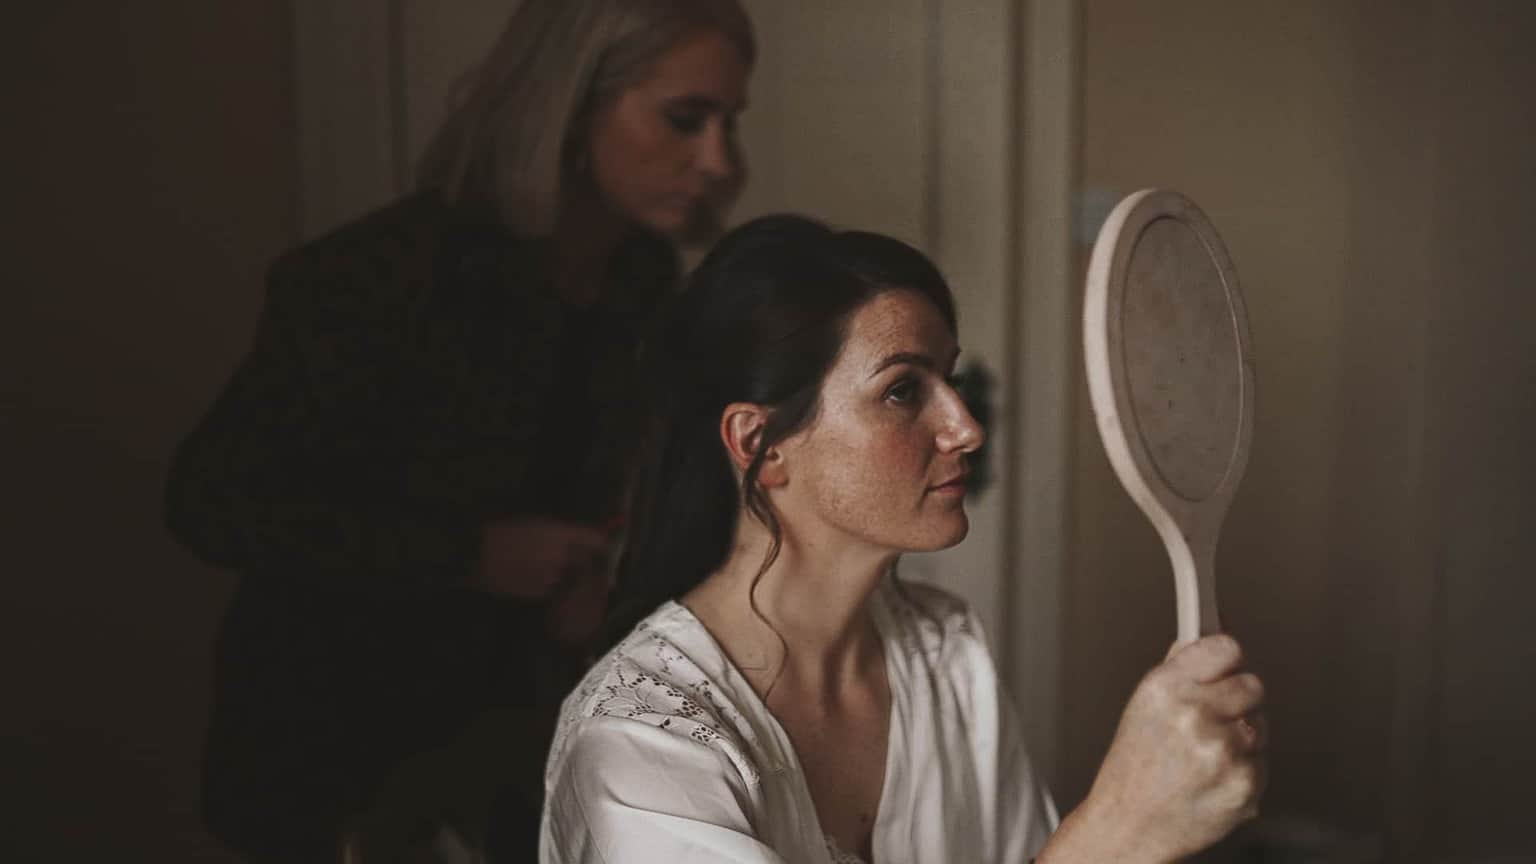 Bride finally looking at mirror and check in make up.